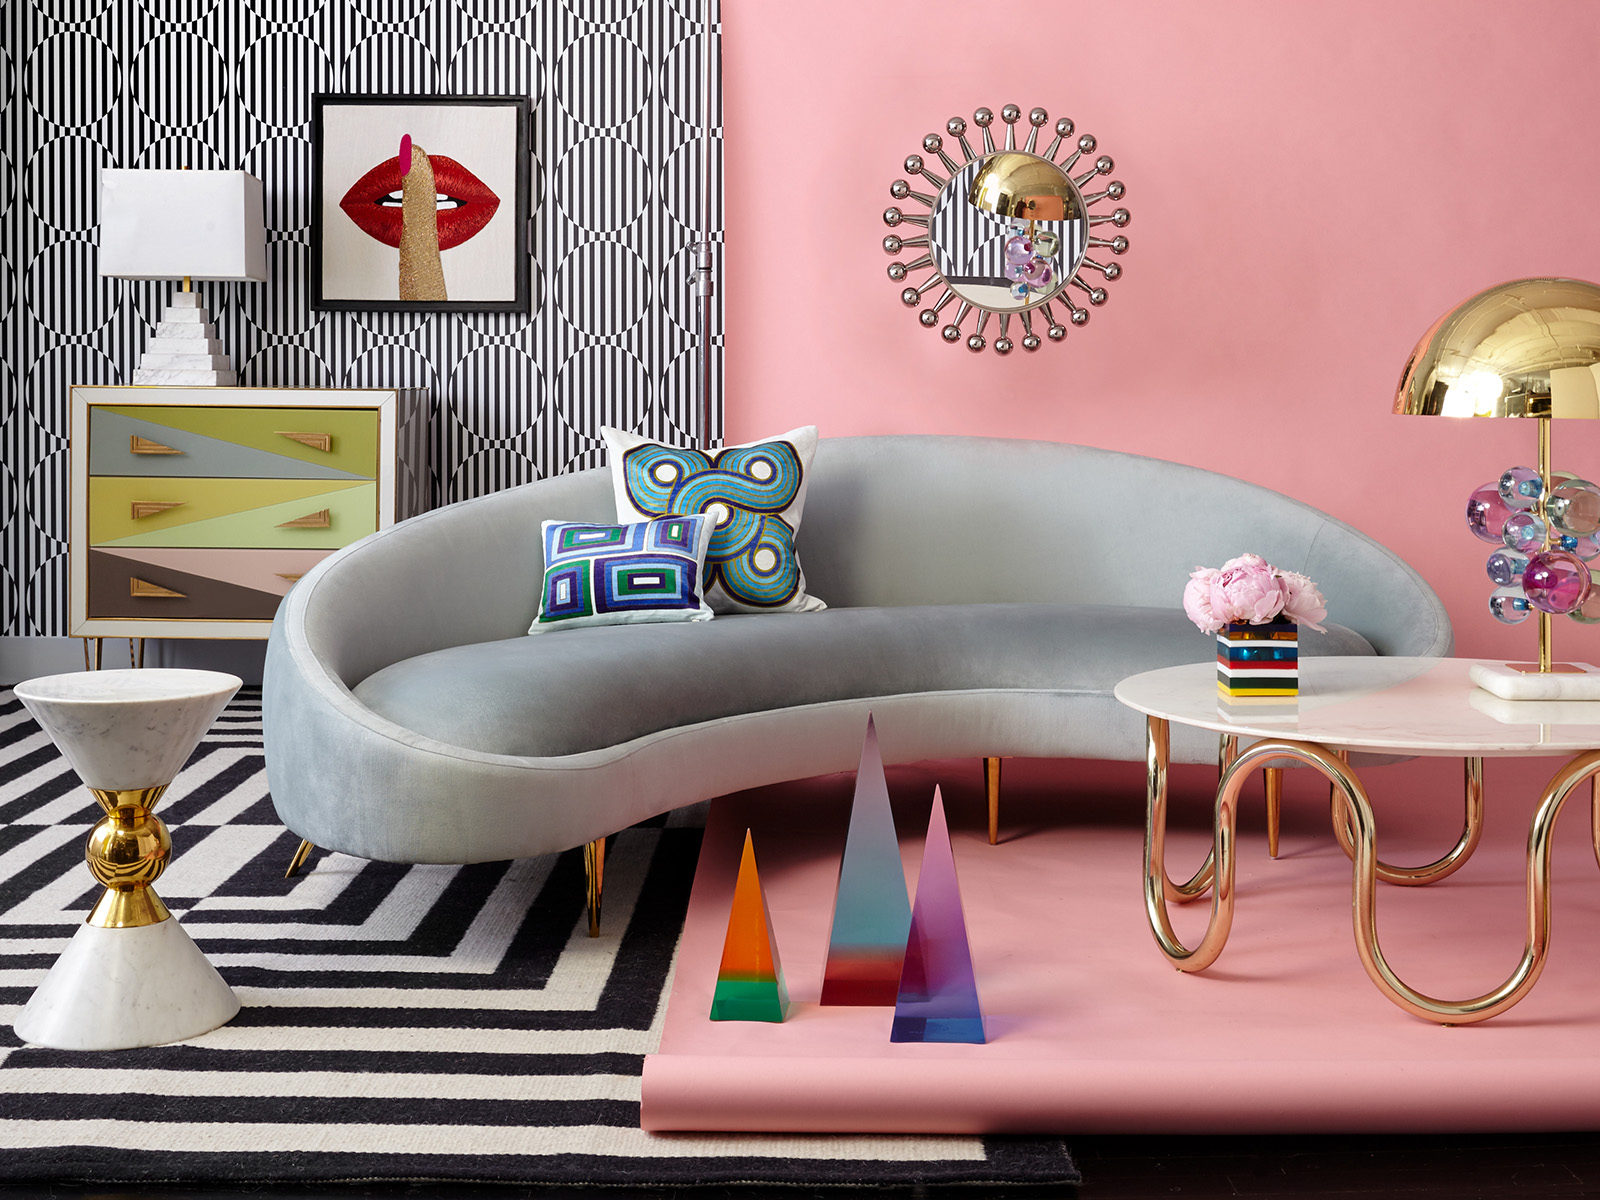 The ever creative Jonathan Adler celebrates and embraces curves in all forms. Interior Designer Sophie Robinson discusses one of the latest interior trends, curves and lozenge shapes. #sophierobinson #interiordesign #jonathanadler #curvedsofa